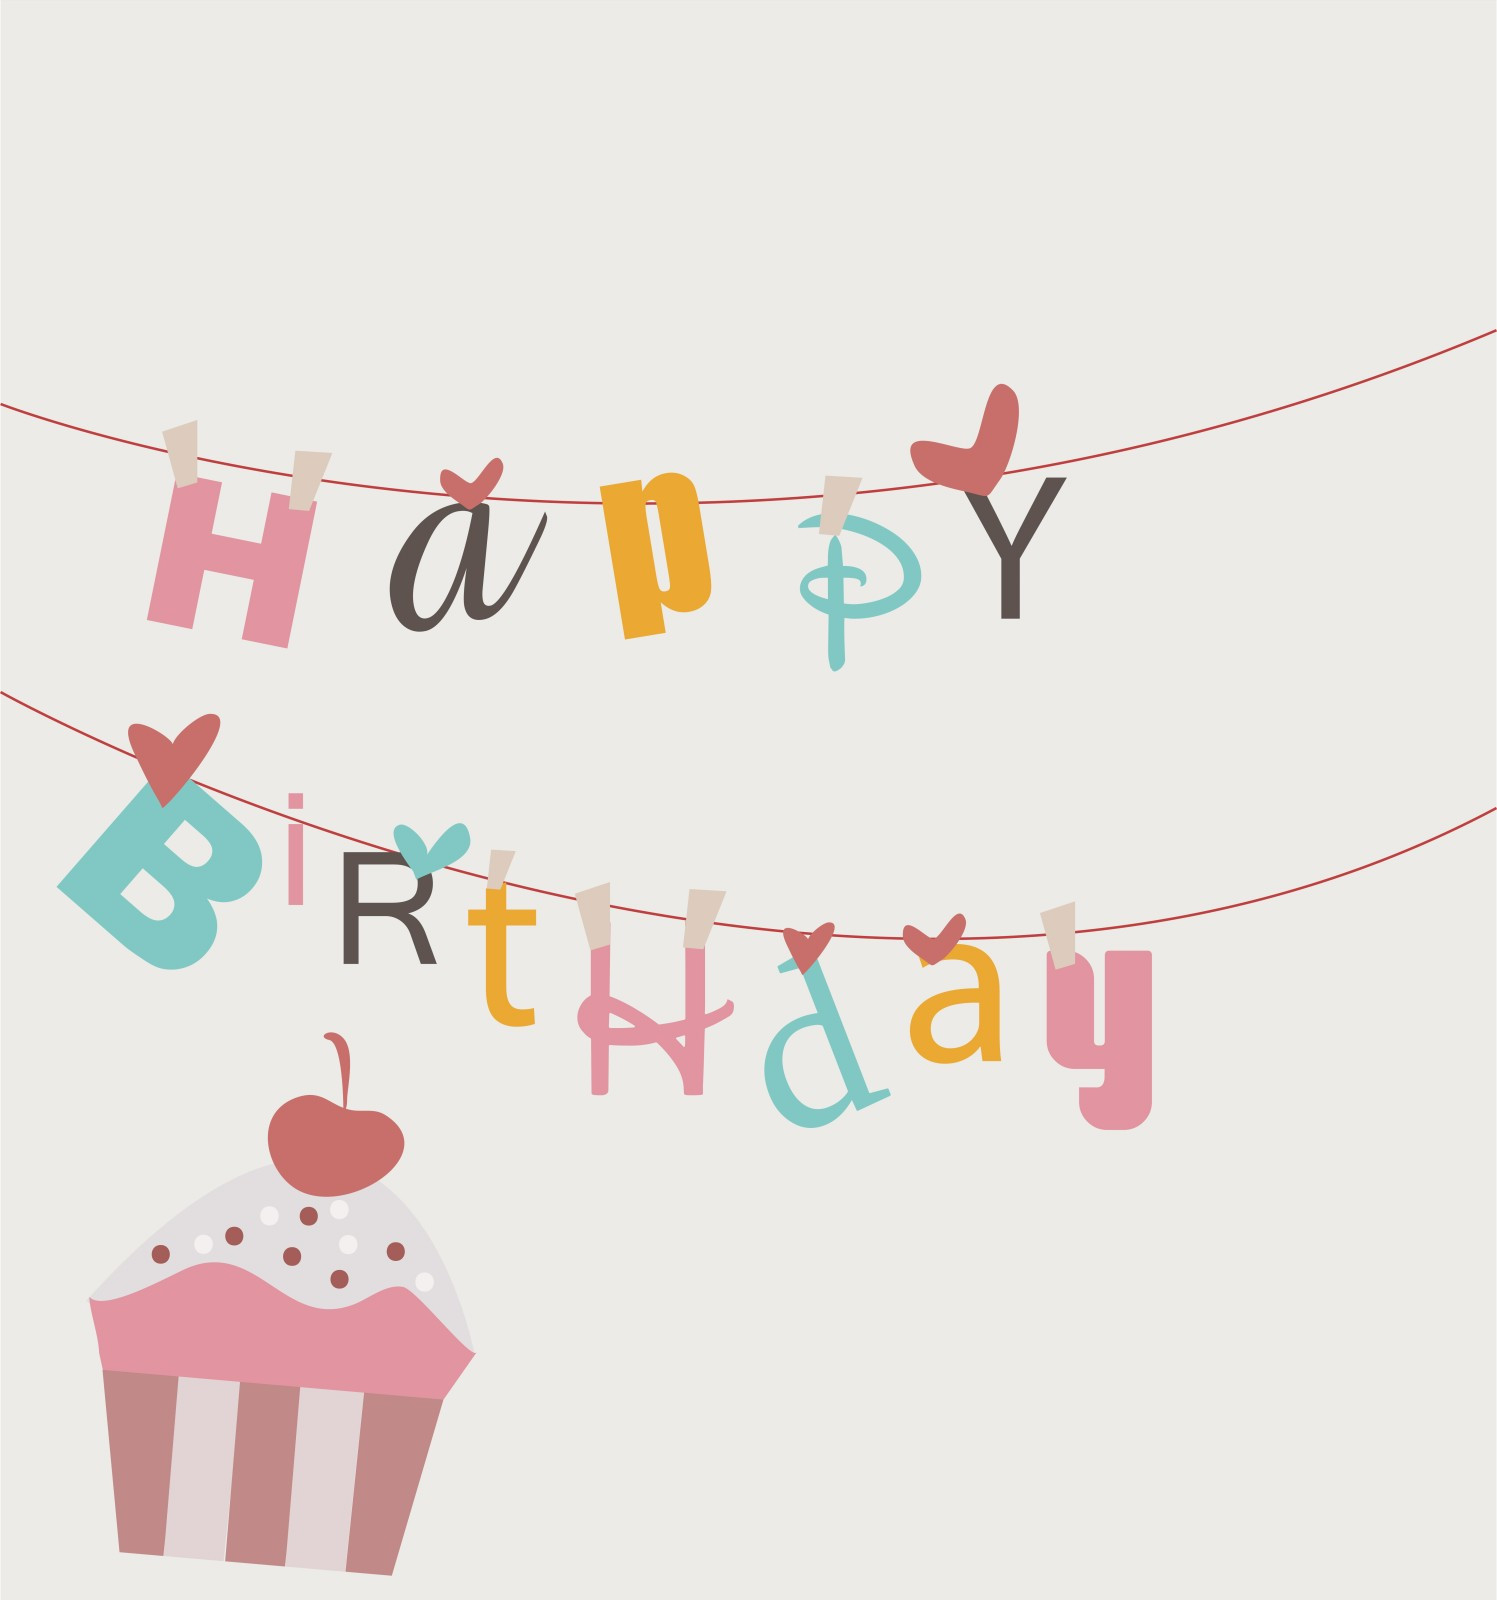 Best ideas about Thoughtful Birthday Wishes . Save or Pin Nice and Thoughtful Birthday Poems to Send to Your Dear Now.